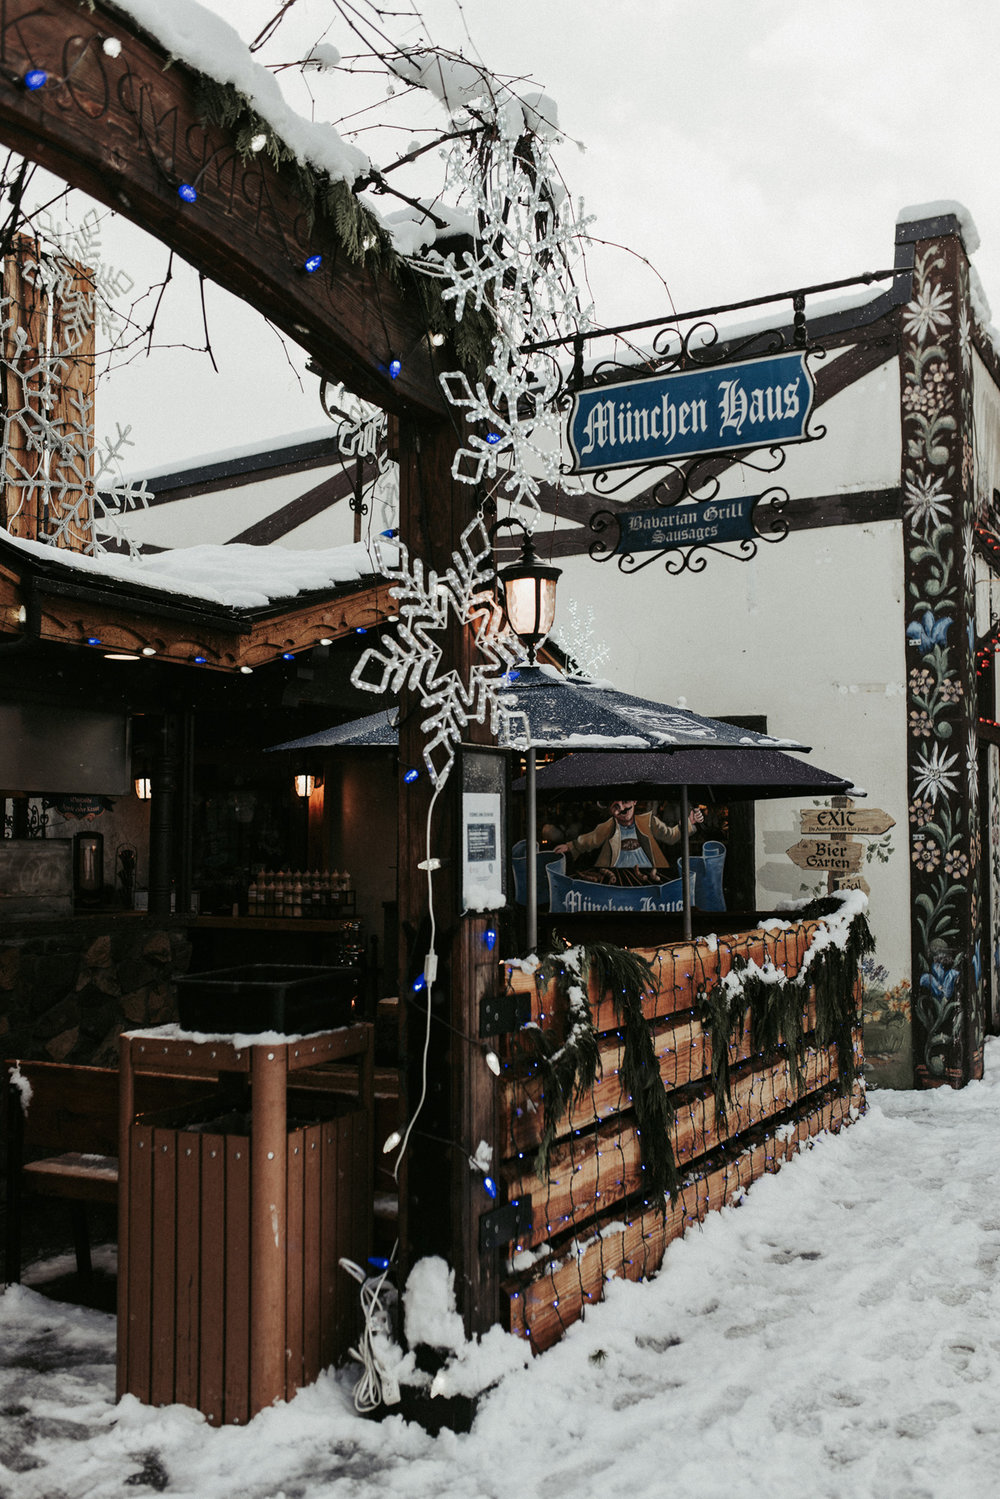 Munchen Haus KyleWillisPhoto Leavenworth Washington